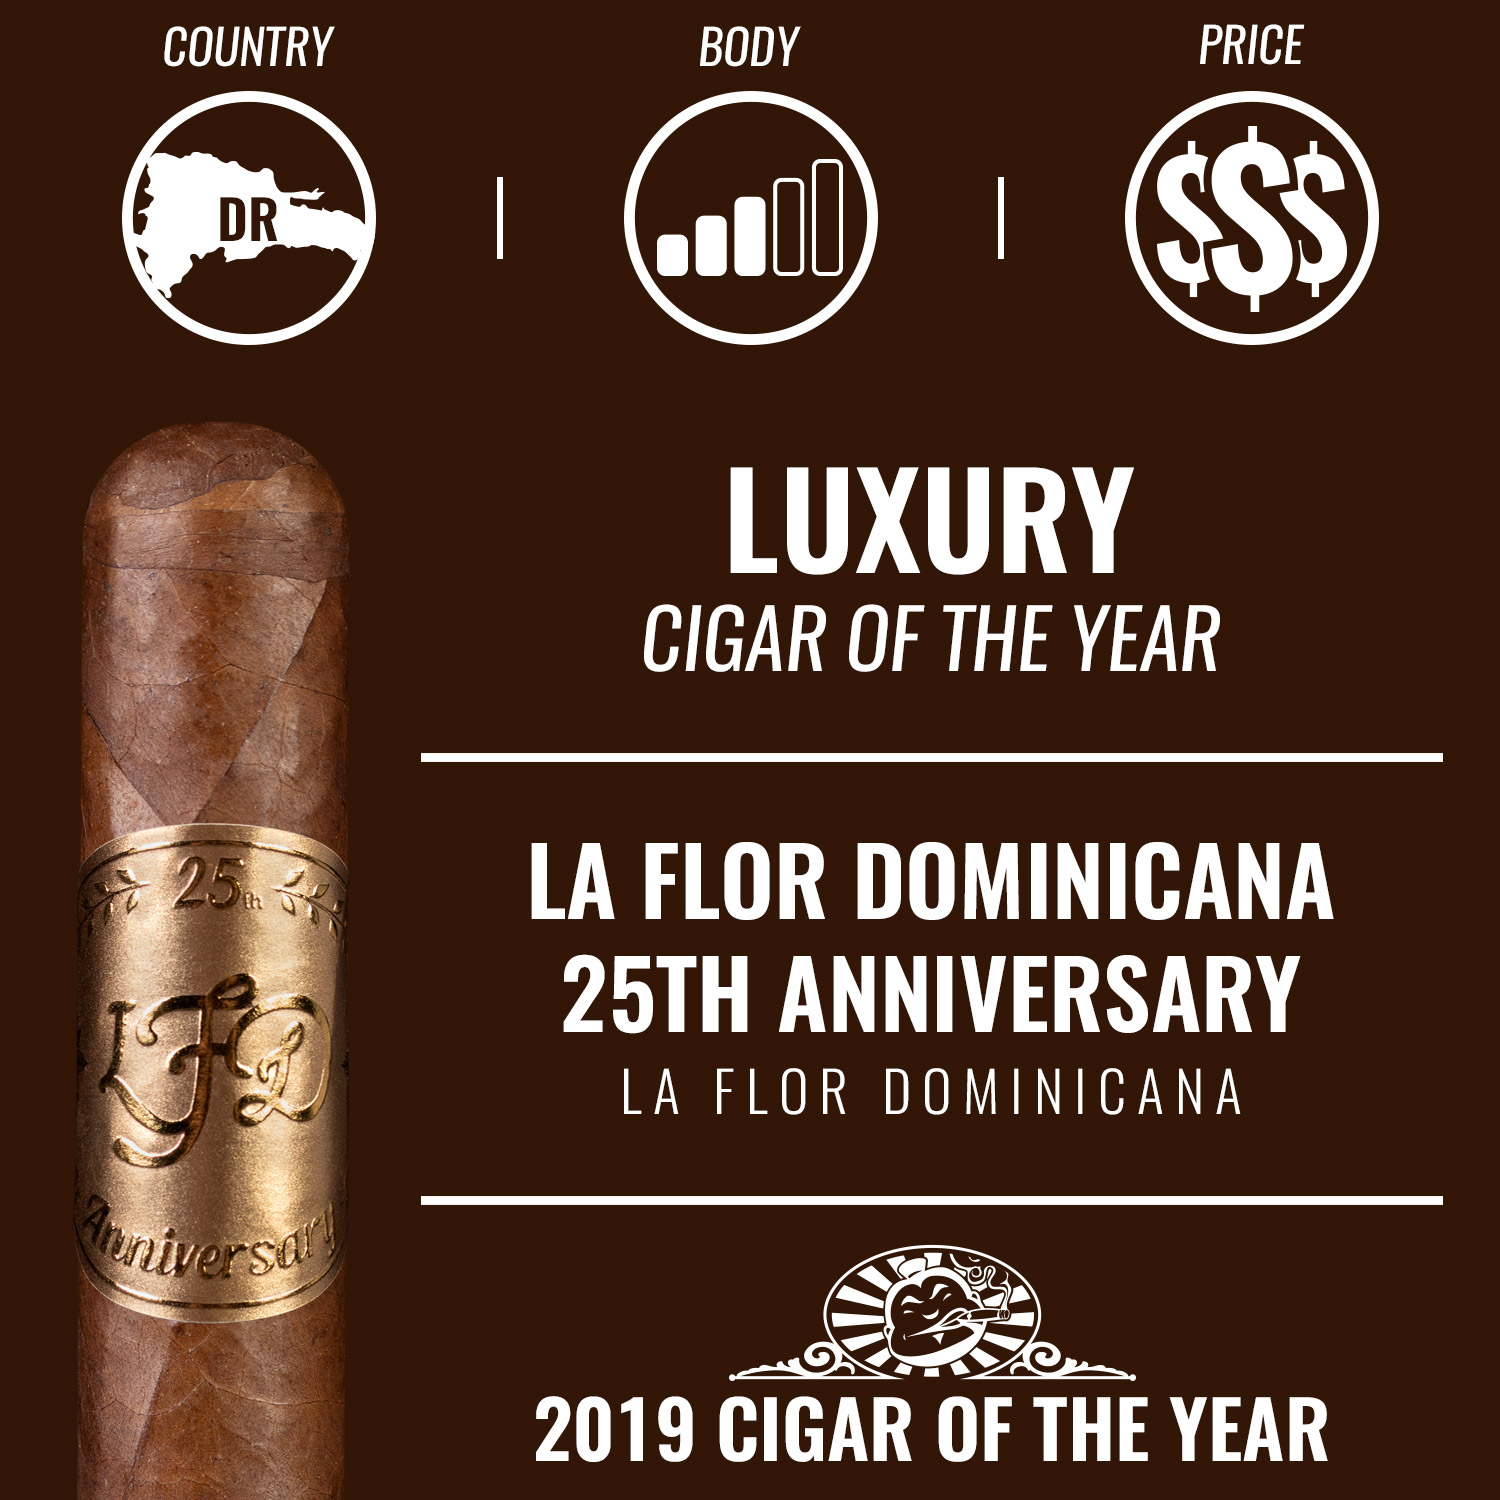 La Flor Dominicana 25th Anniversary Luxury Cigar of the Year 2019